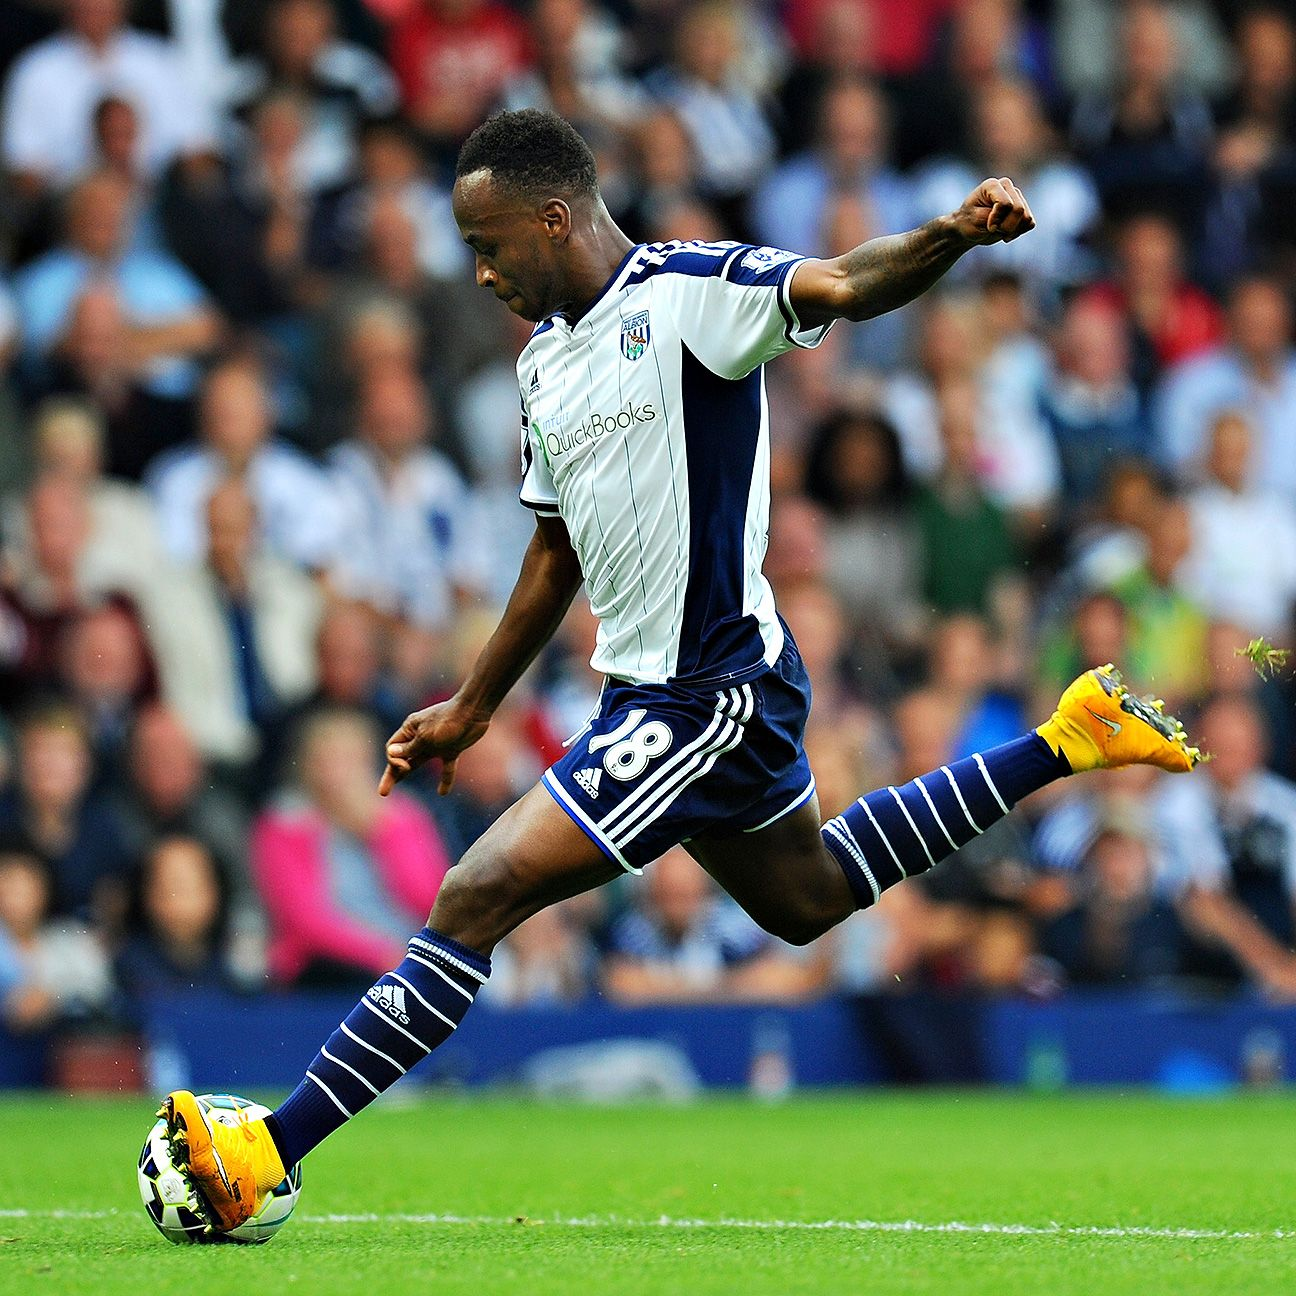 West Brom's Saido Berahino getting behind a defender was a common sight this season in the Premier League.